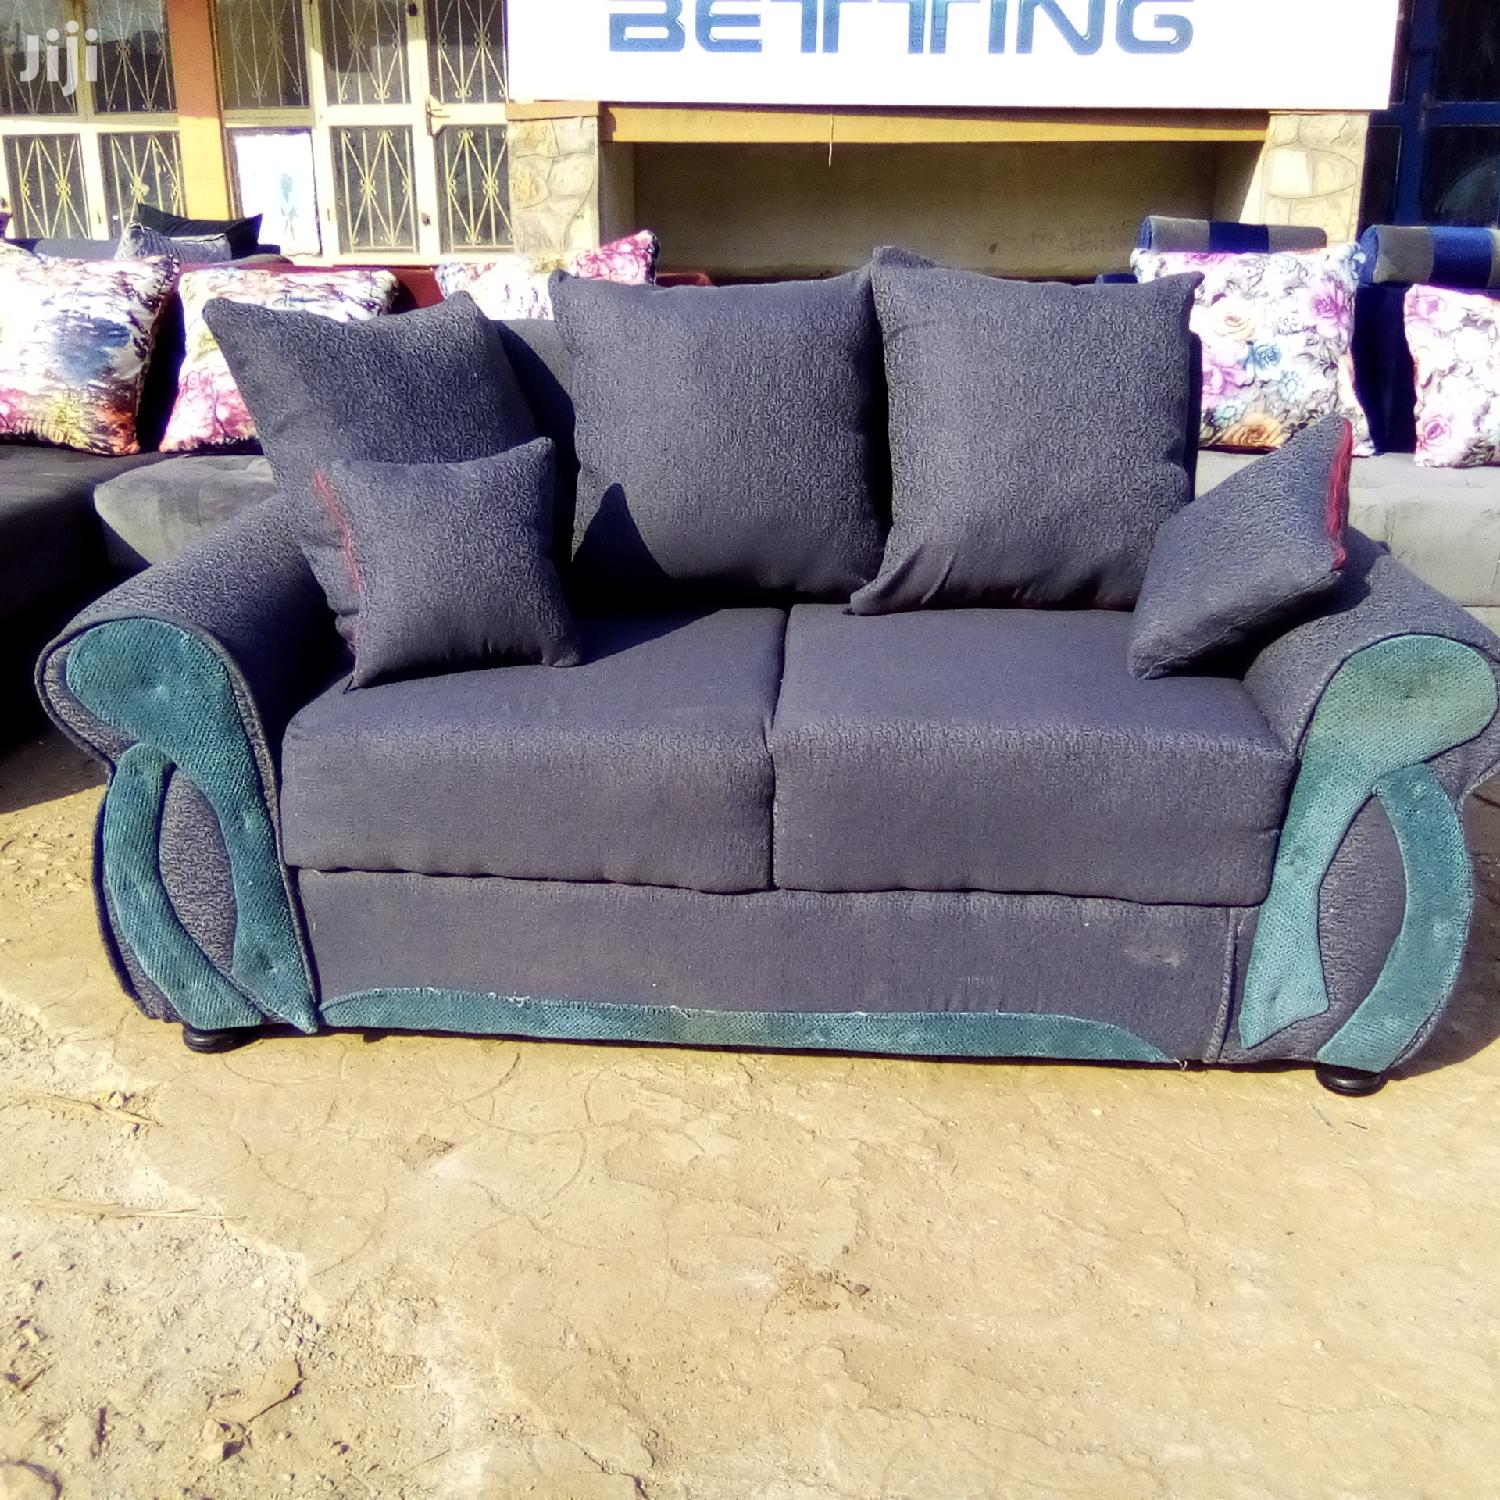 Wanda Sofas , in Any Design Material or Colour of Your Choice